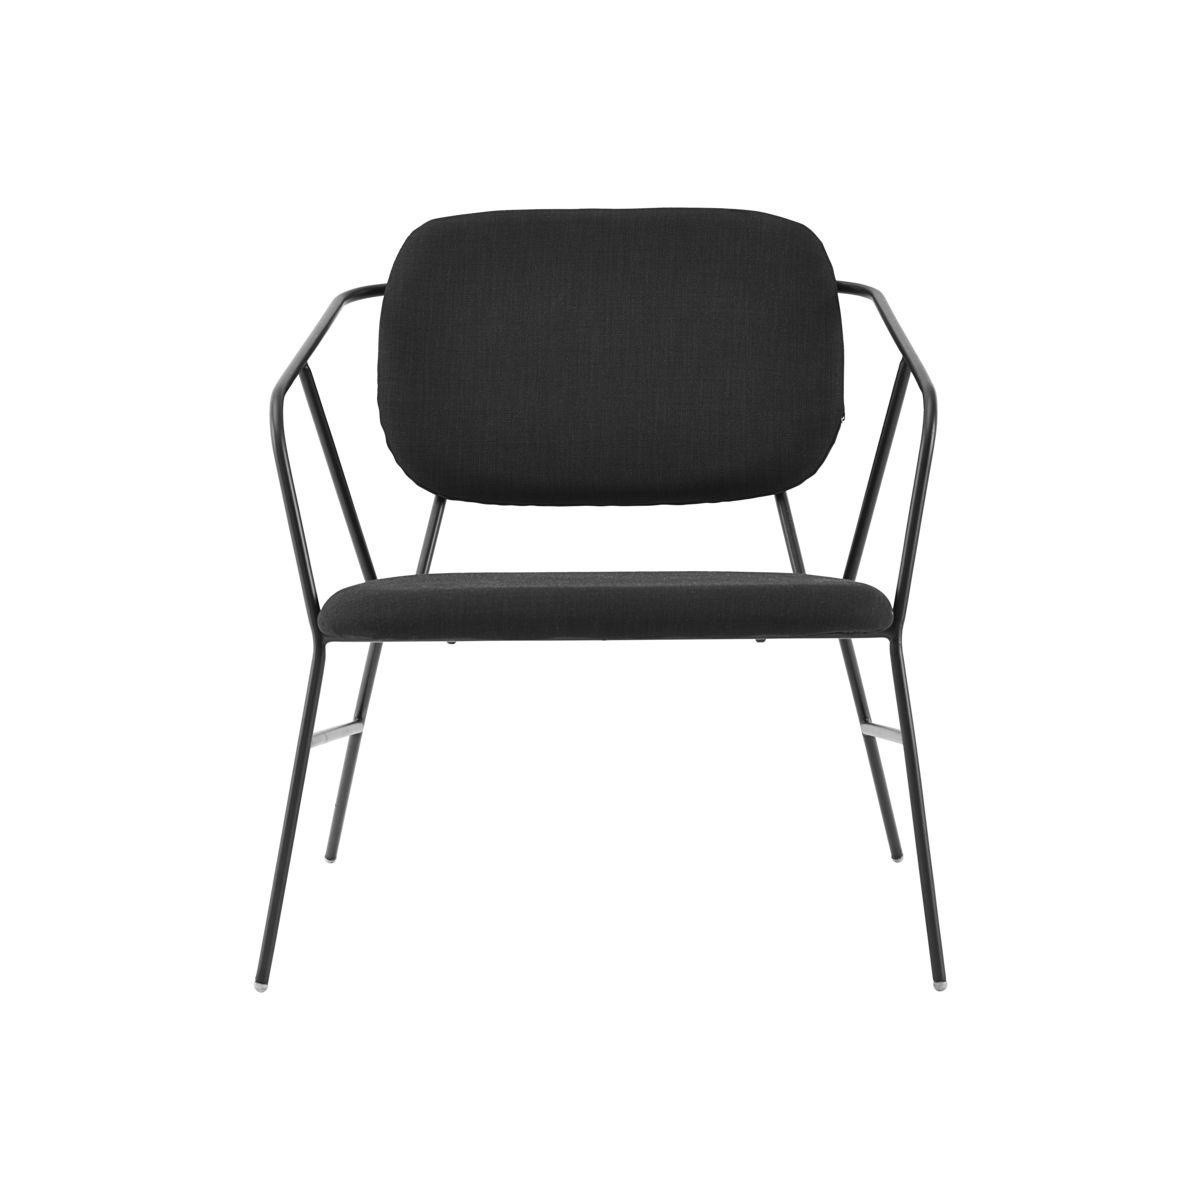 Sessel Schwarz Lounge Sessel Schwarz Best Duhome Sessel Lounge Sessel In